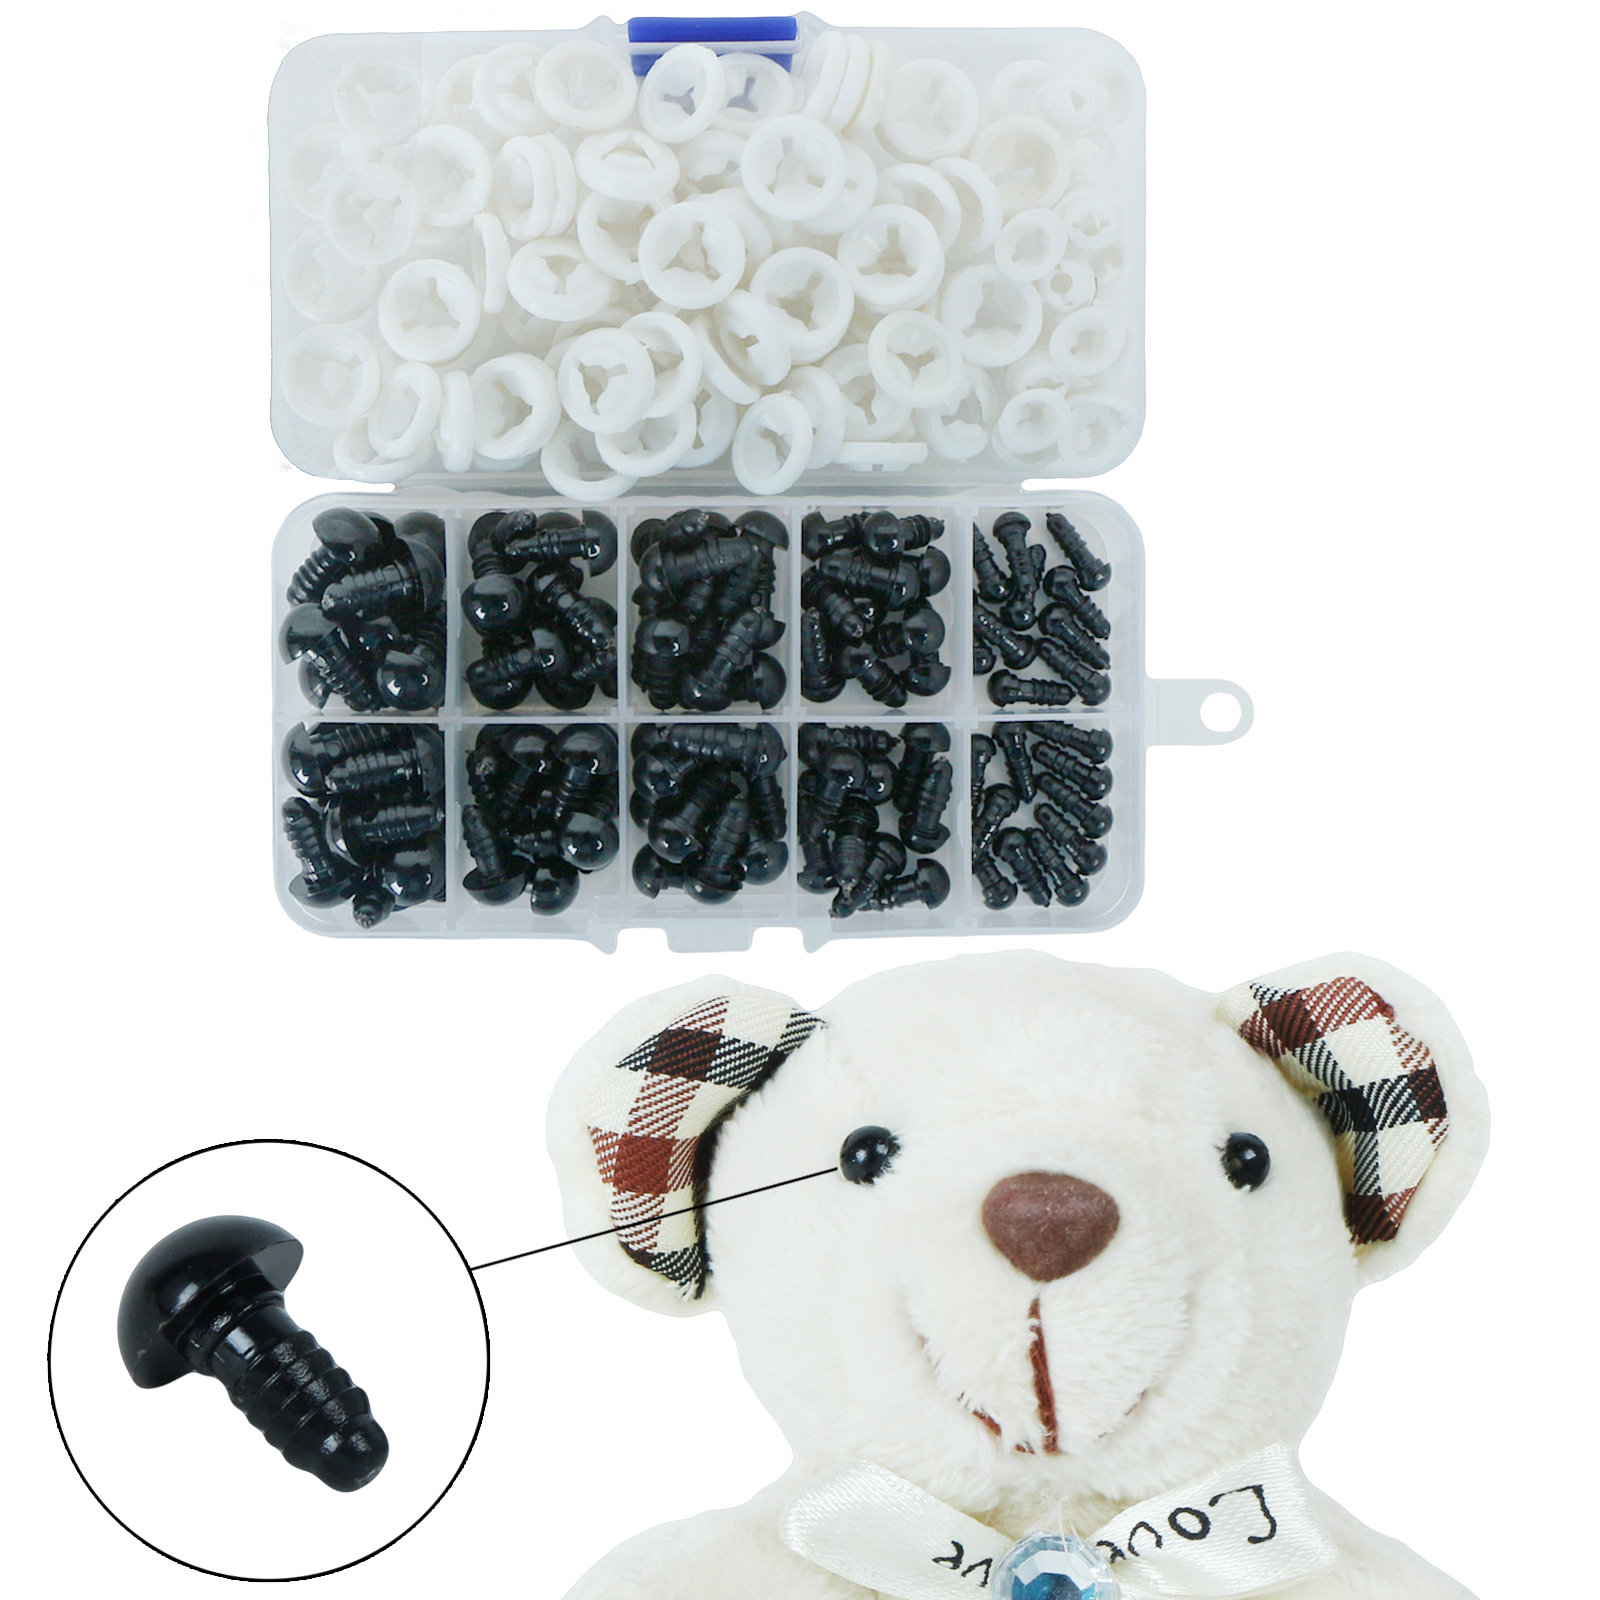 100pcs 6-12mm Black Plastic Crafts Doll Safety Eyes Bear For Plush Toys Stuffed Toys Doll Amigurumi Puppet DIY Accessories